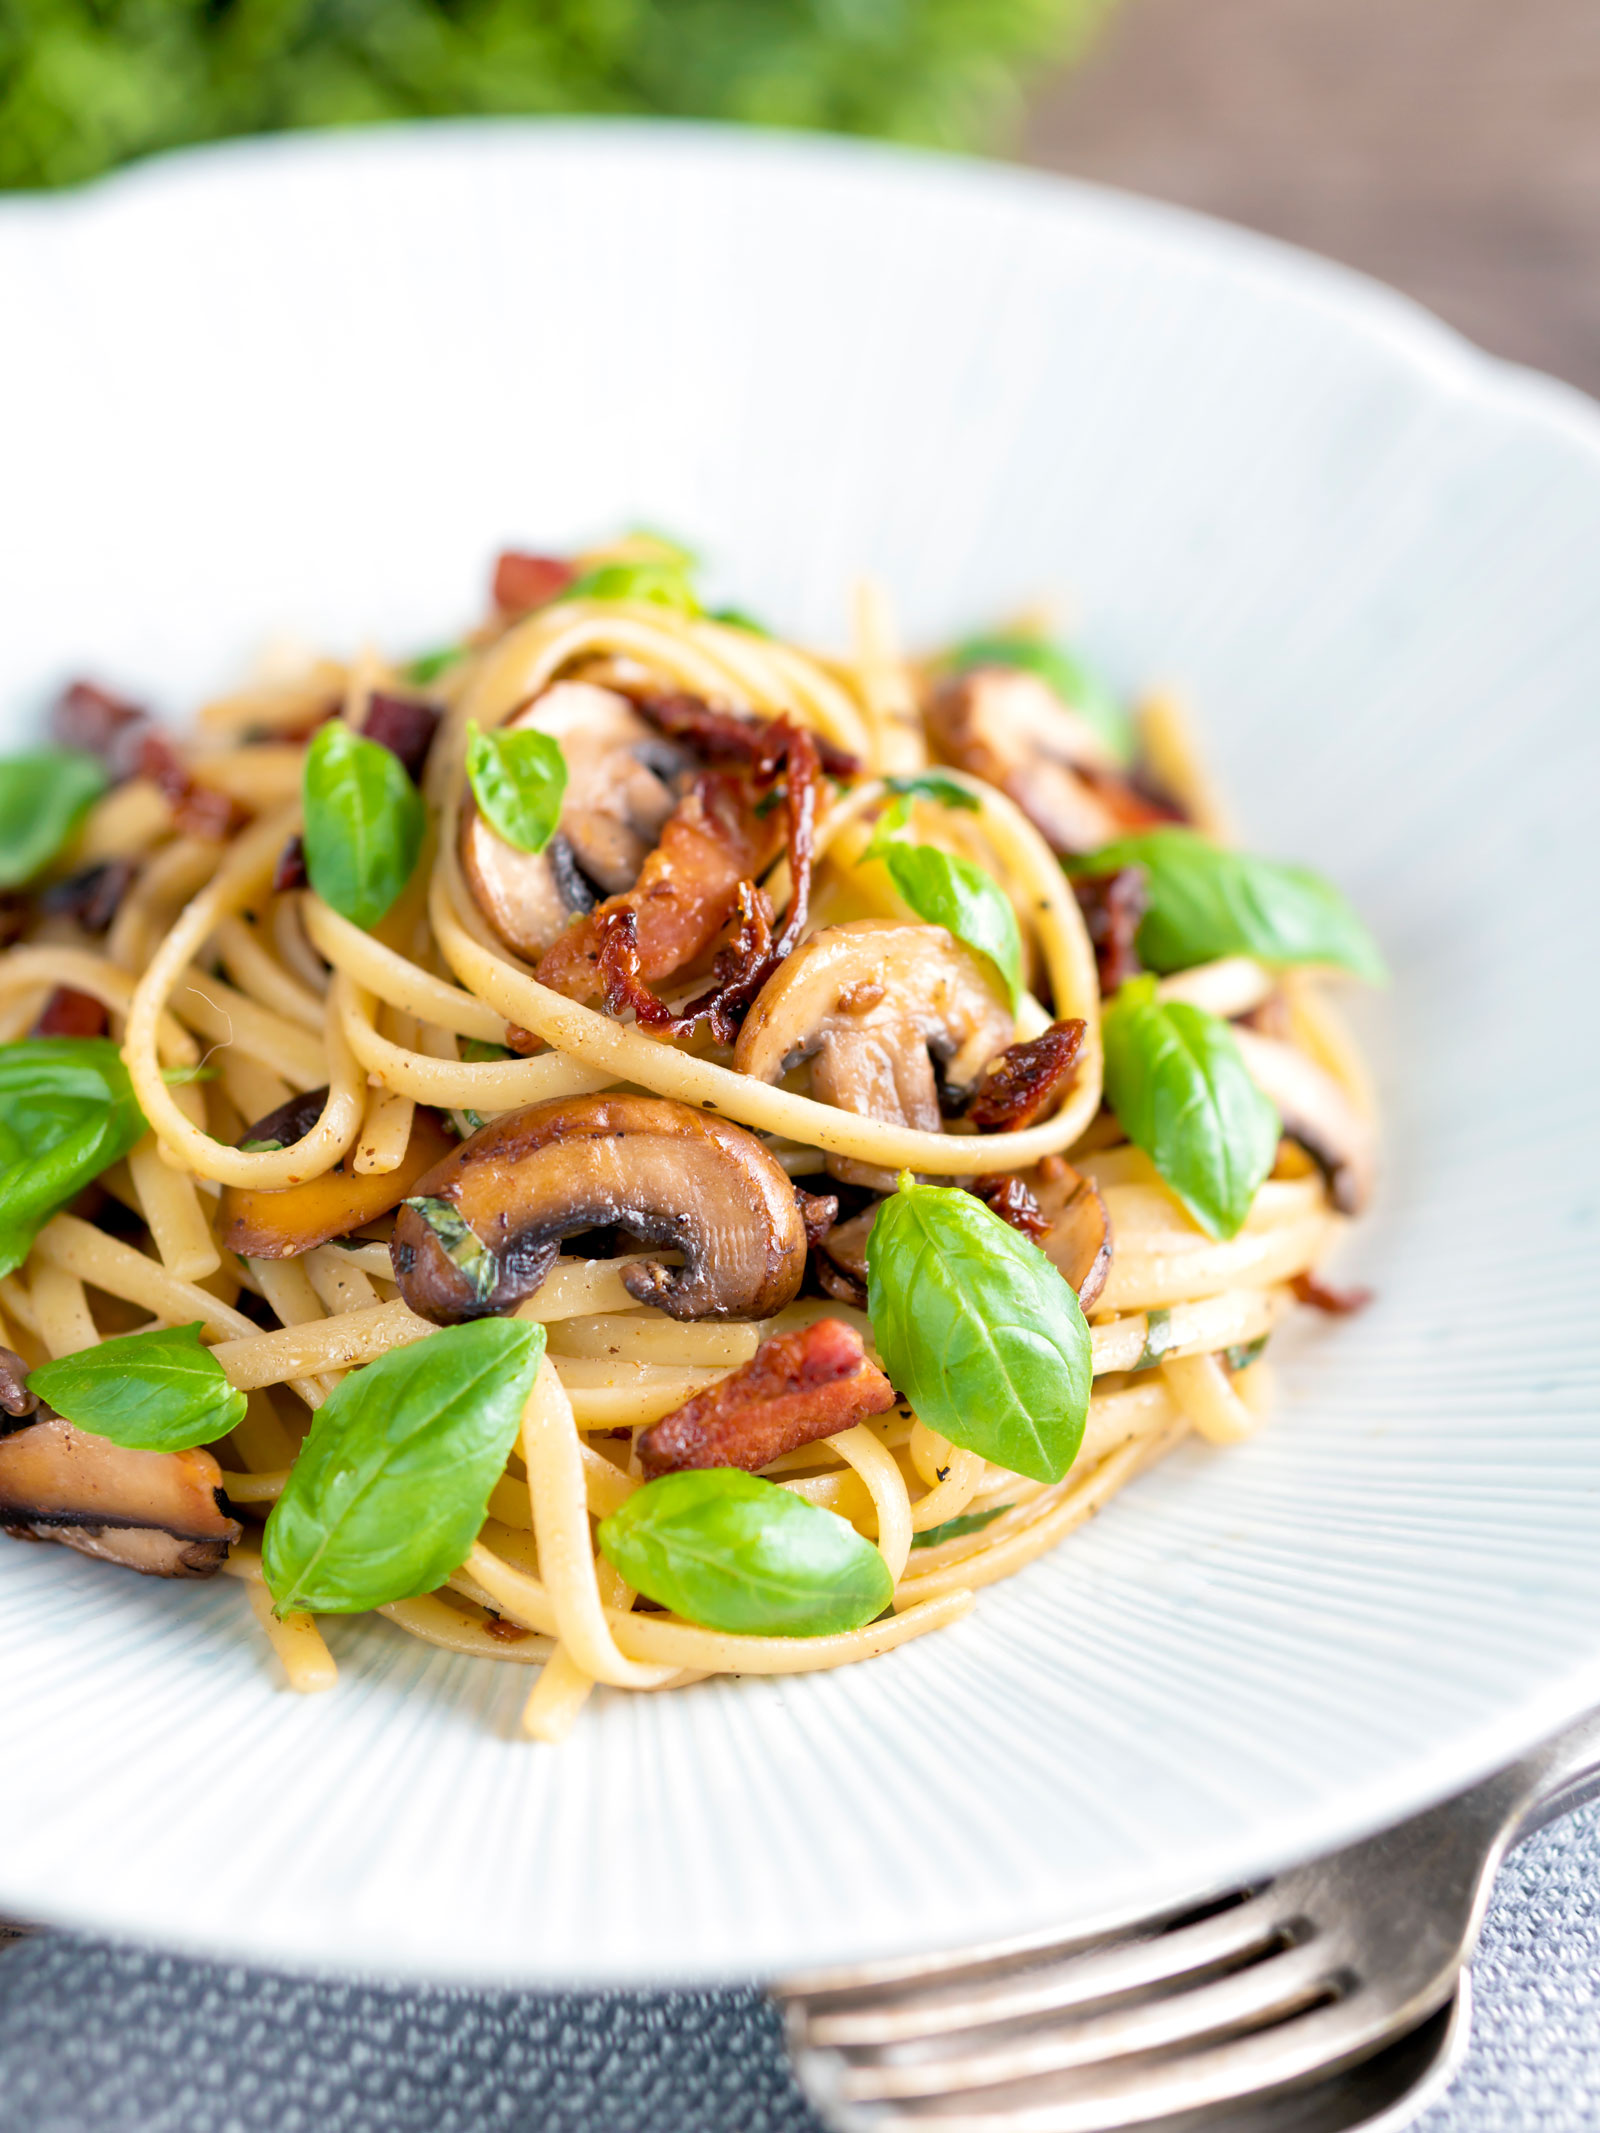 Bacon and mushroom pasta with sun dried tomatoes.